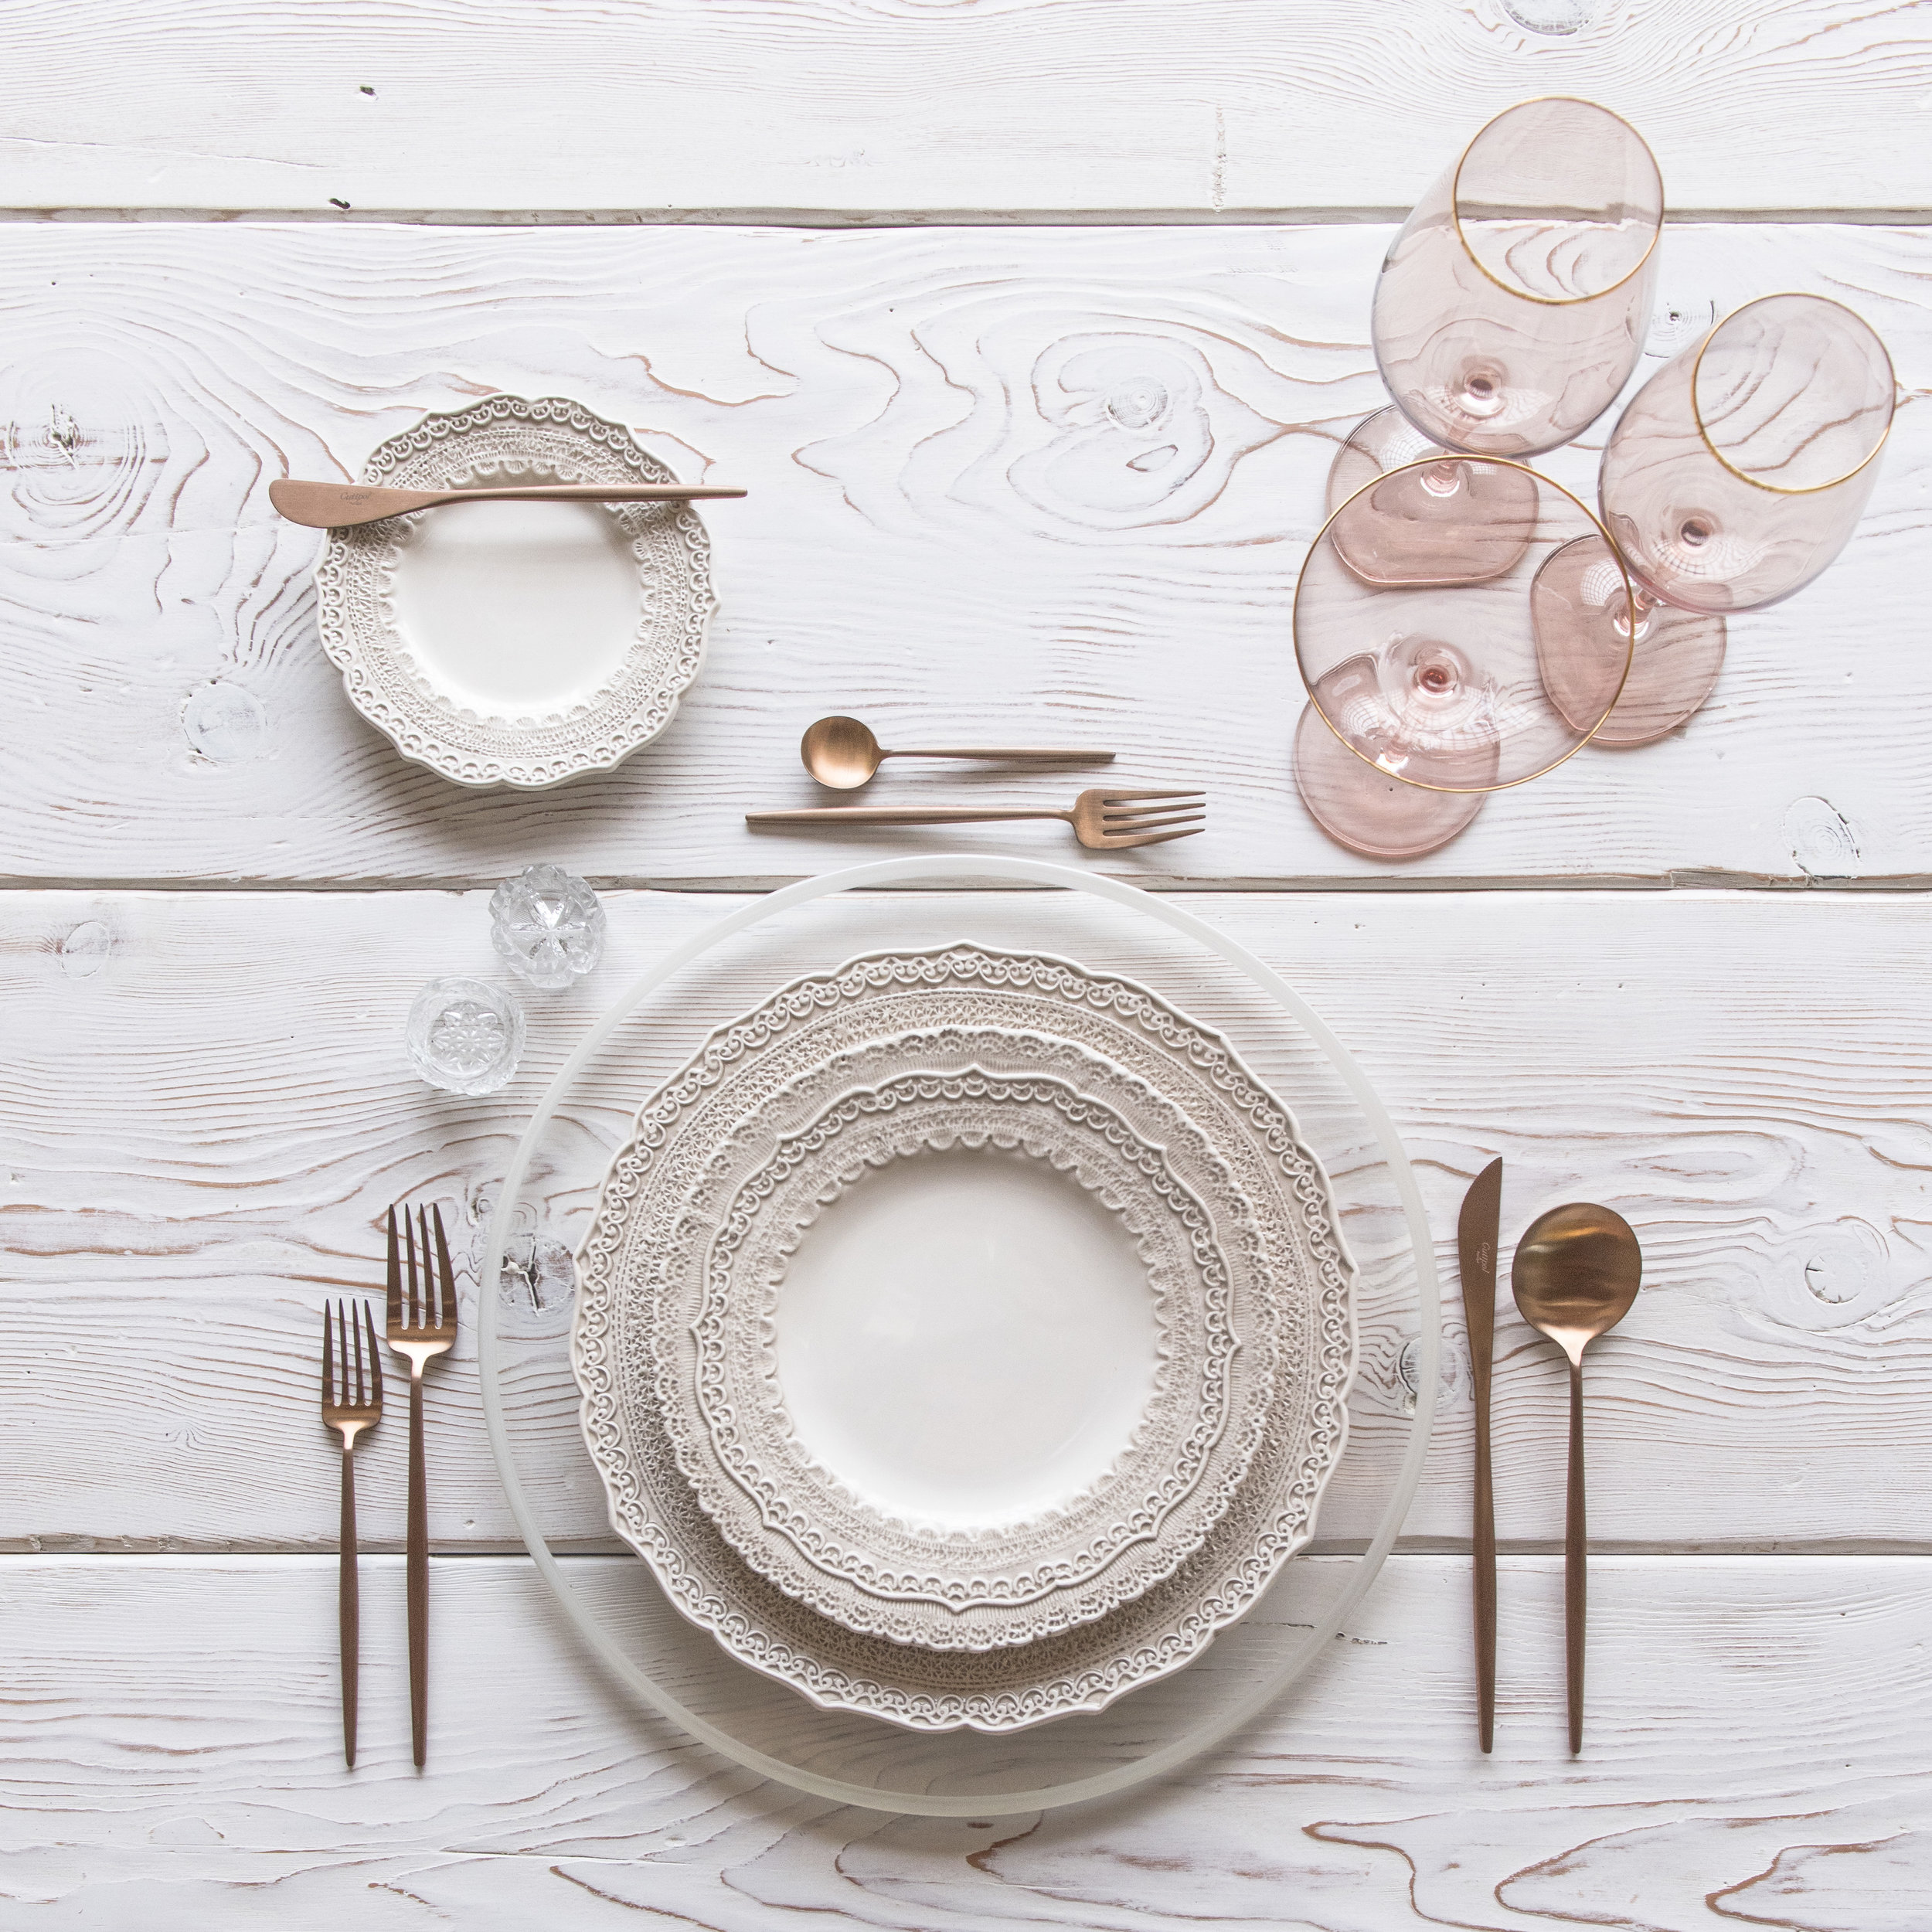 RENT: Halo Glass Chargers in Pearl + Lace Dinnerware in White + Moon Flatware in Brushed Rose Gold + Bella 24k Gold Rimmed Stemware in Blush + Antique Crystal Salt Cellars  SHOP:Halo Glass Chargers in Pearl + Moon Flatware in Brushed Rose Gold + Bella 24k Gold Rimmed Stemware in Blush